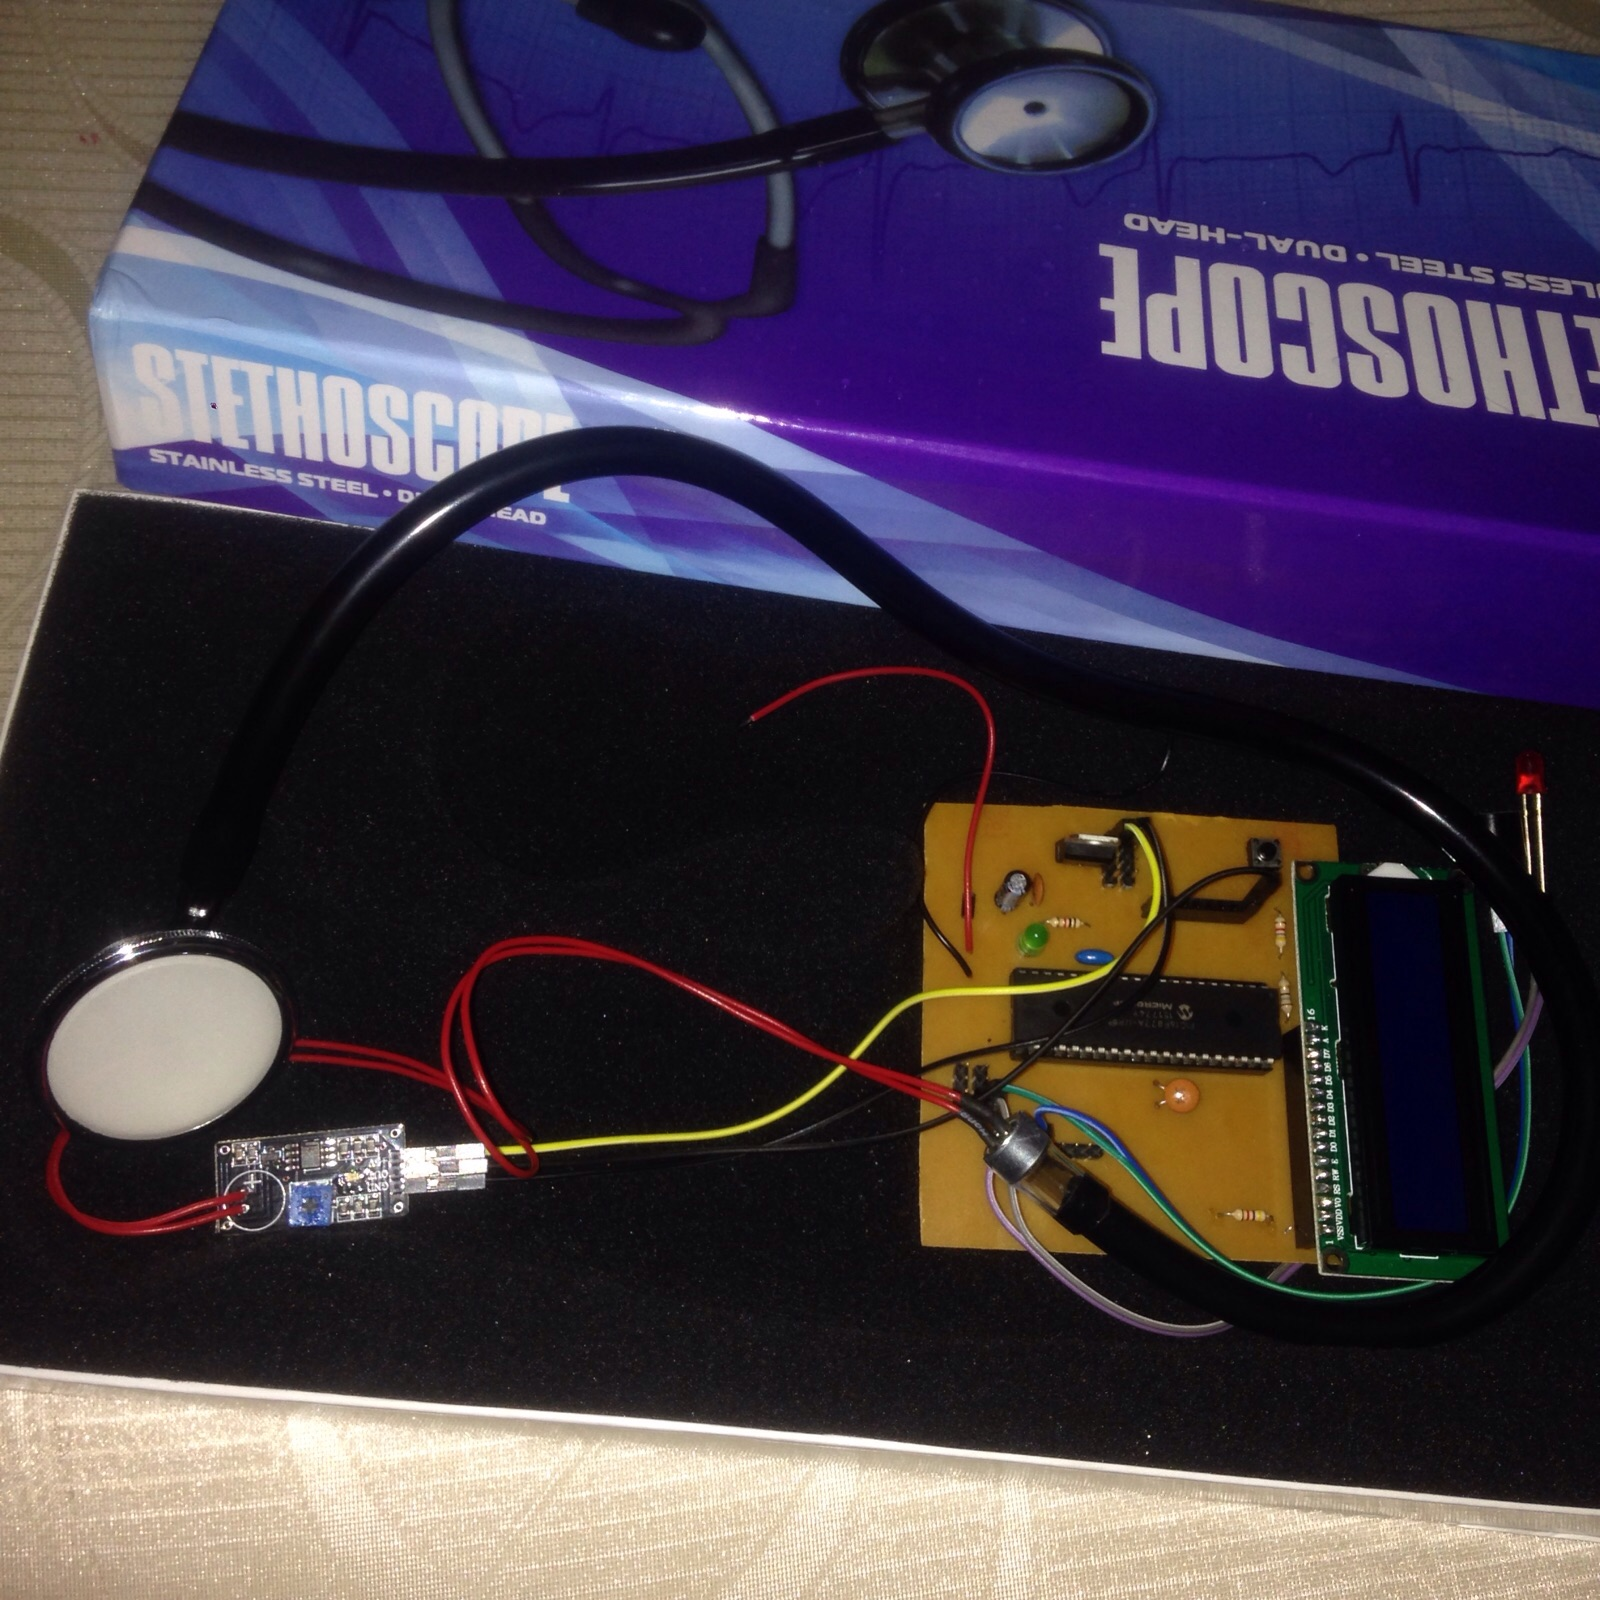 Digital Stethoscope Electronics Project Electronic Designing Engineering Sensor Converting That Sound Energy To Electricity And Running It Through Circuitry Which Can Amplify Filter By Frequency